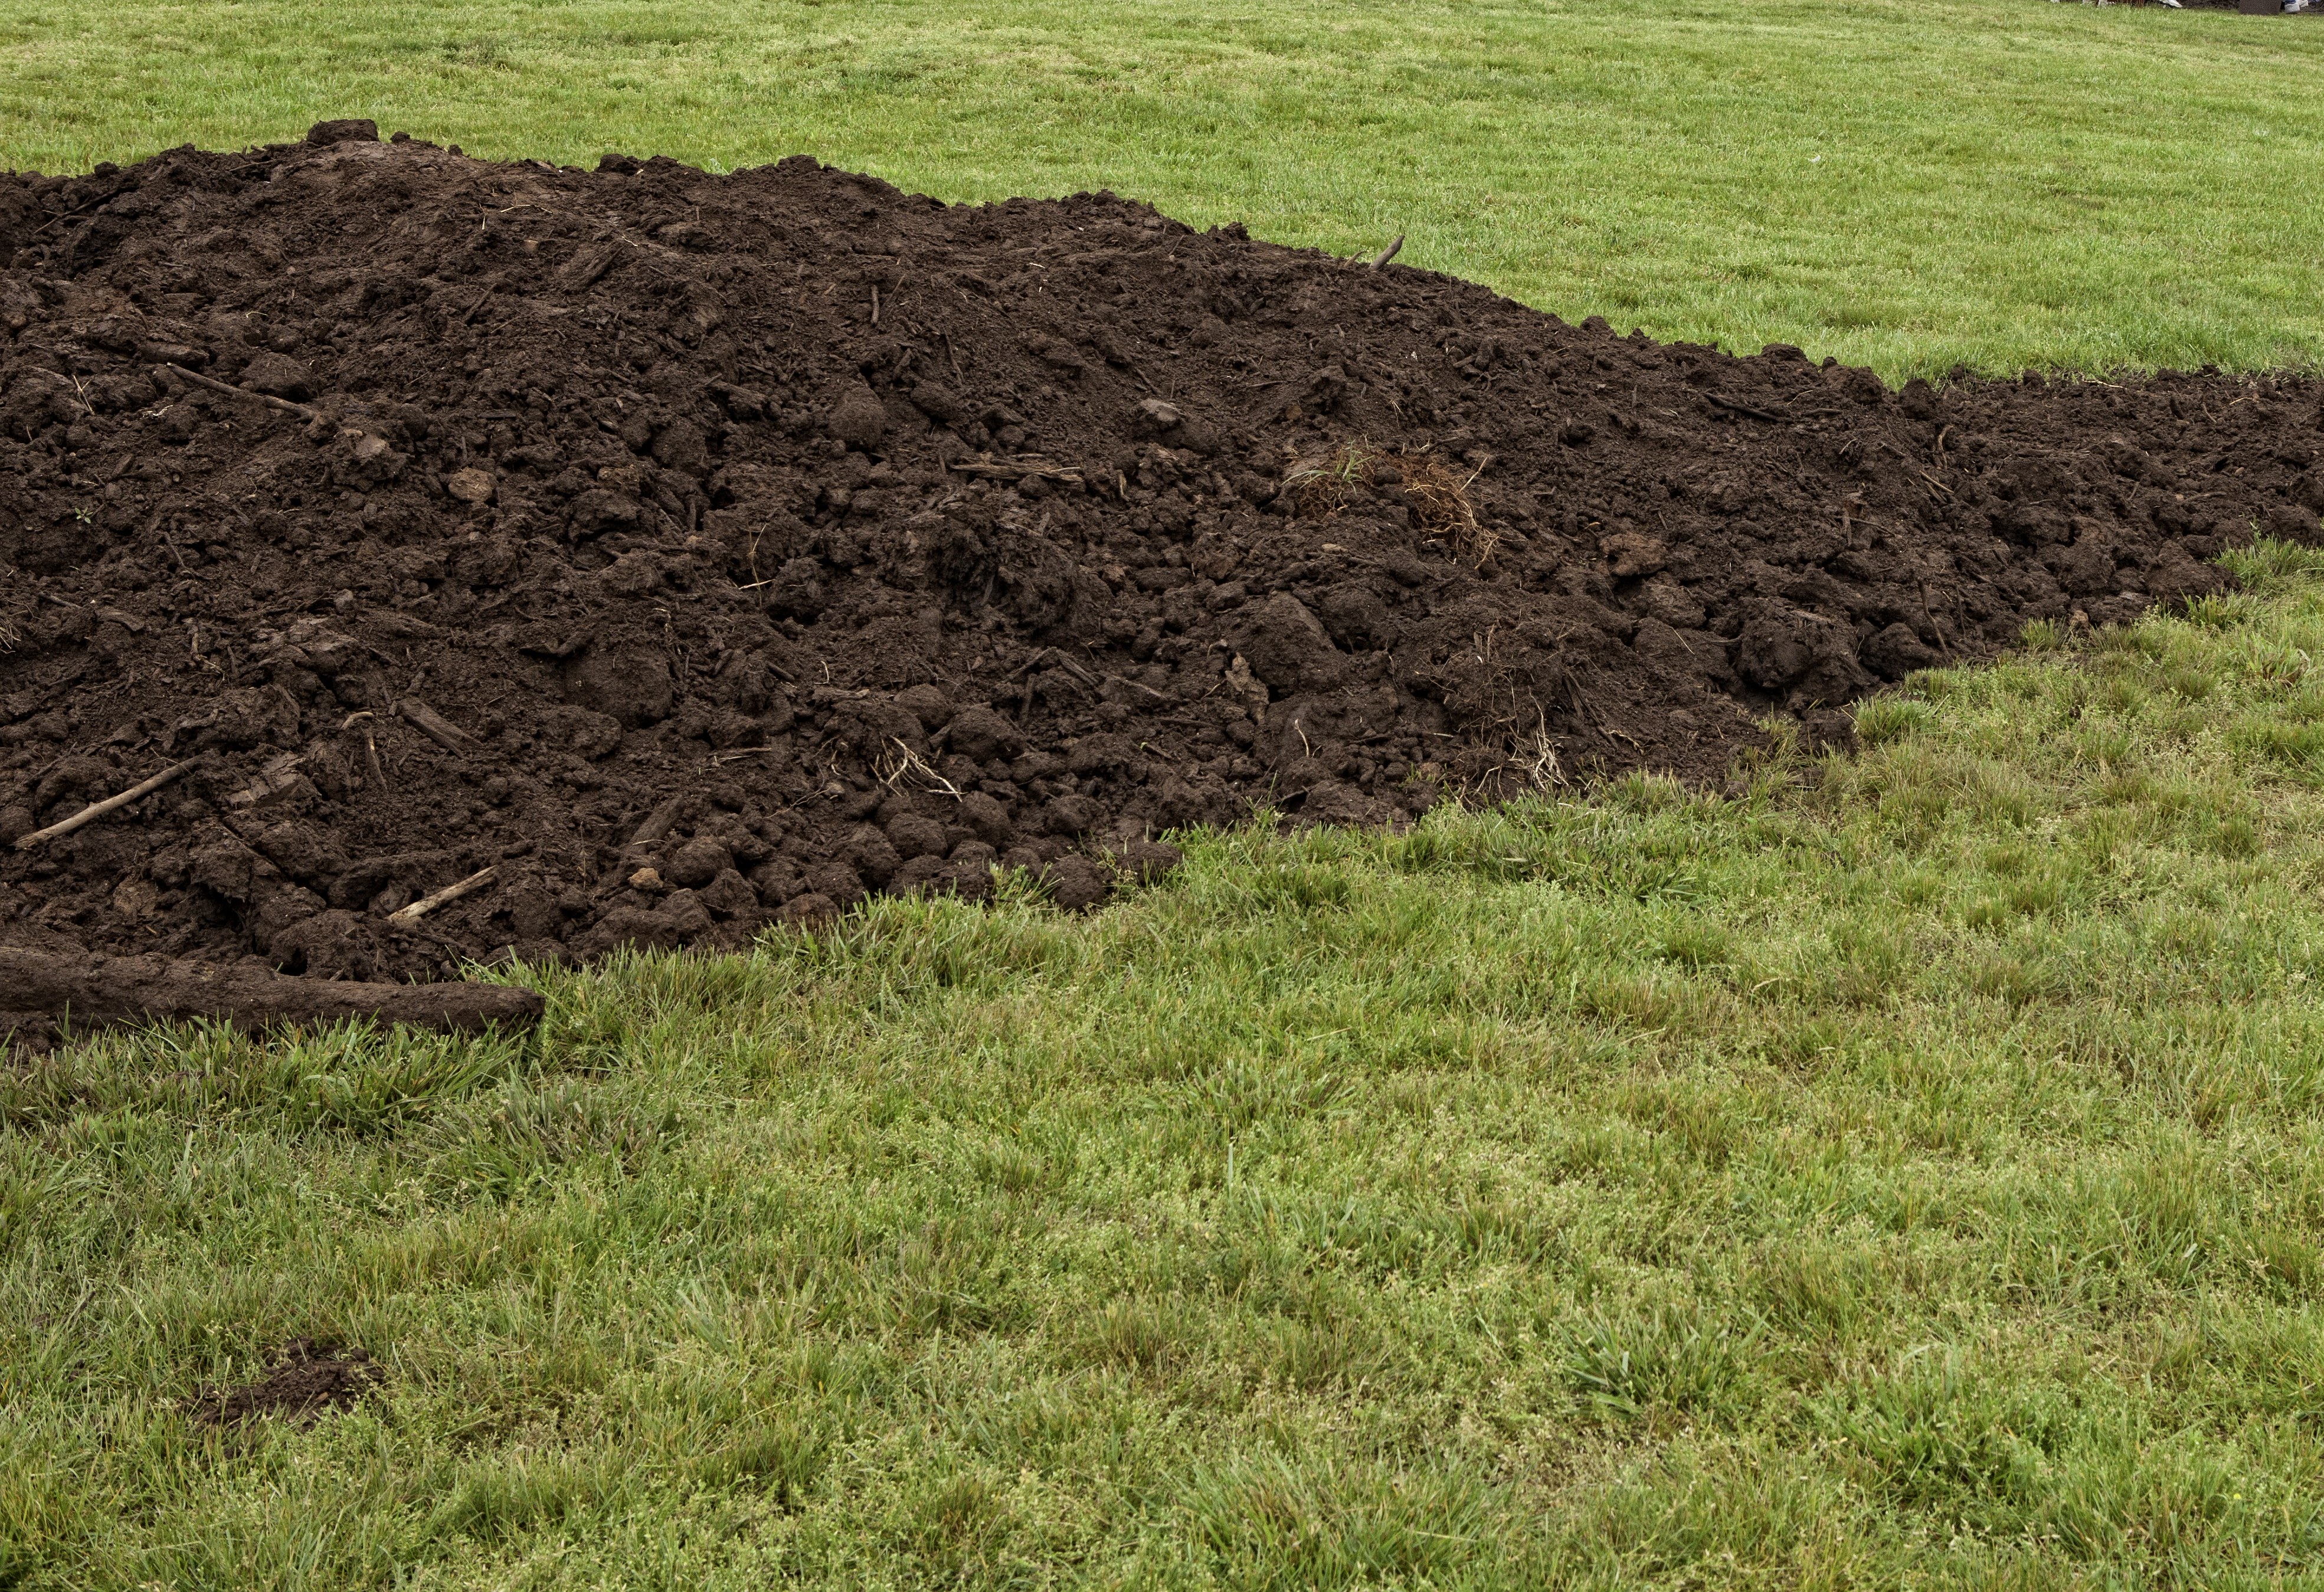 57170fd411 The Best Ways to Spread Topsoil | Home Guides | SF Gate